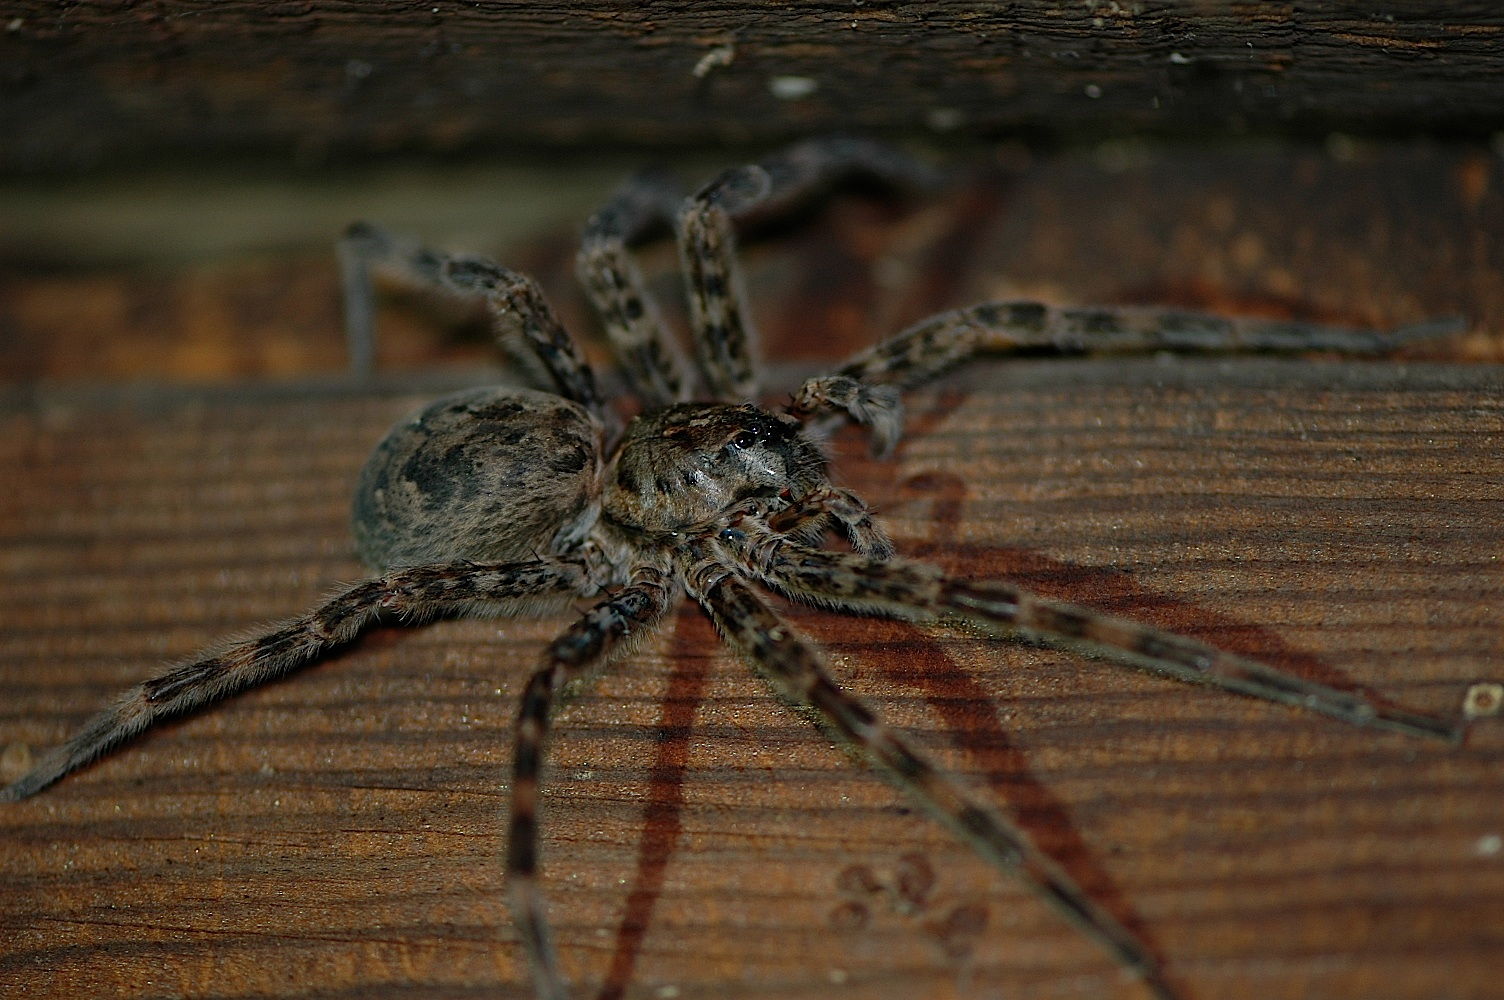 Field biology in southeastern ohio ohio spiders for Fishing spider michigan